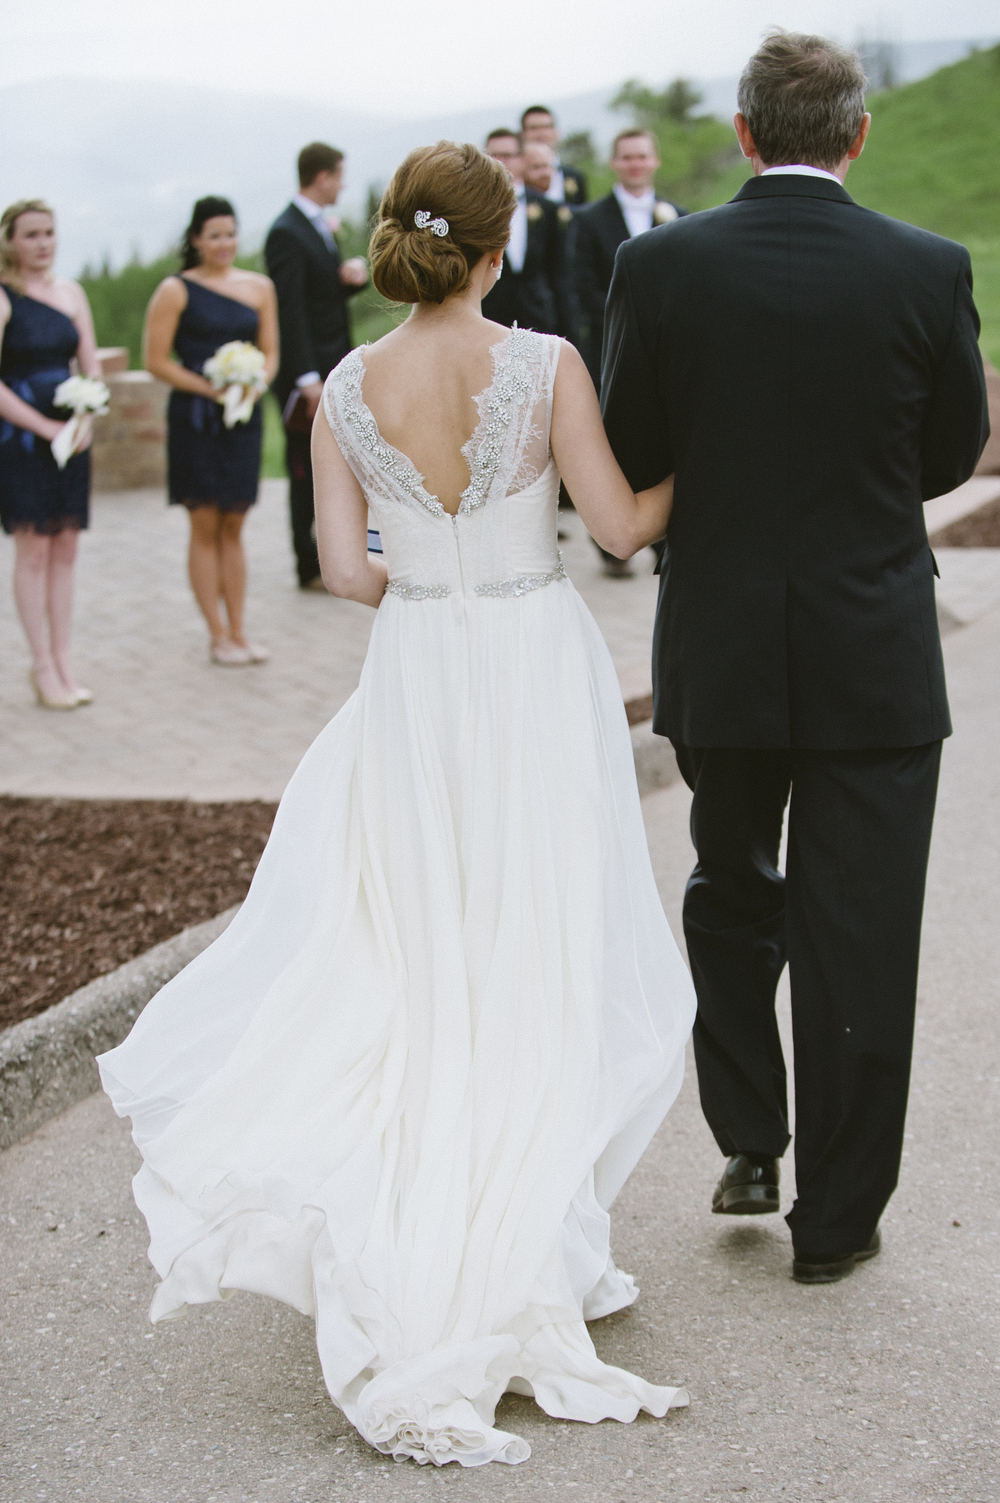 Lindsay&Drew_TheWedding_298.JPG